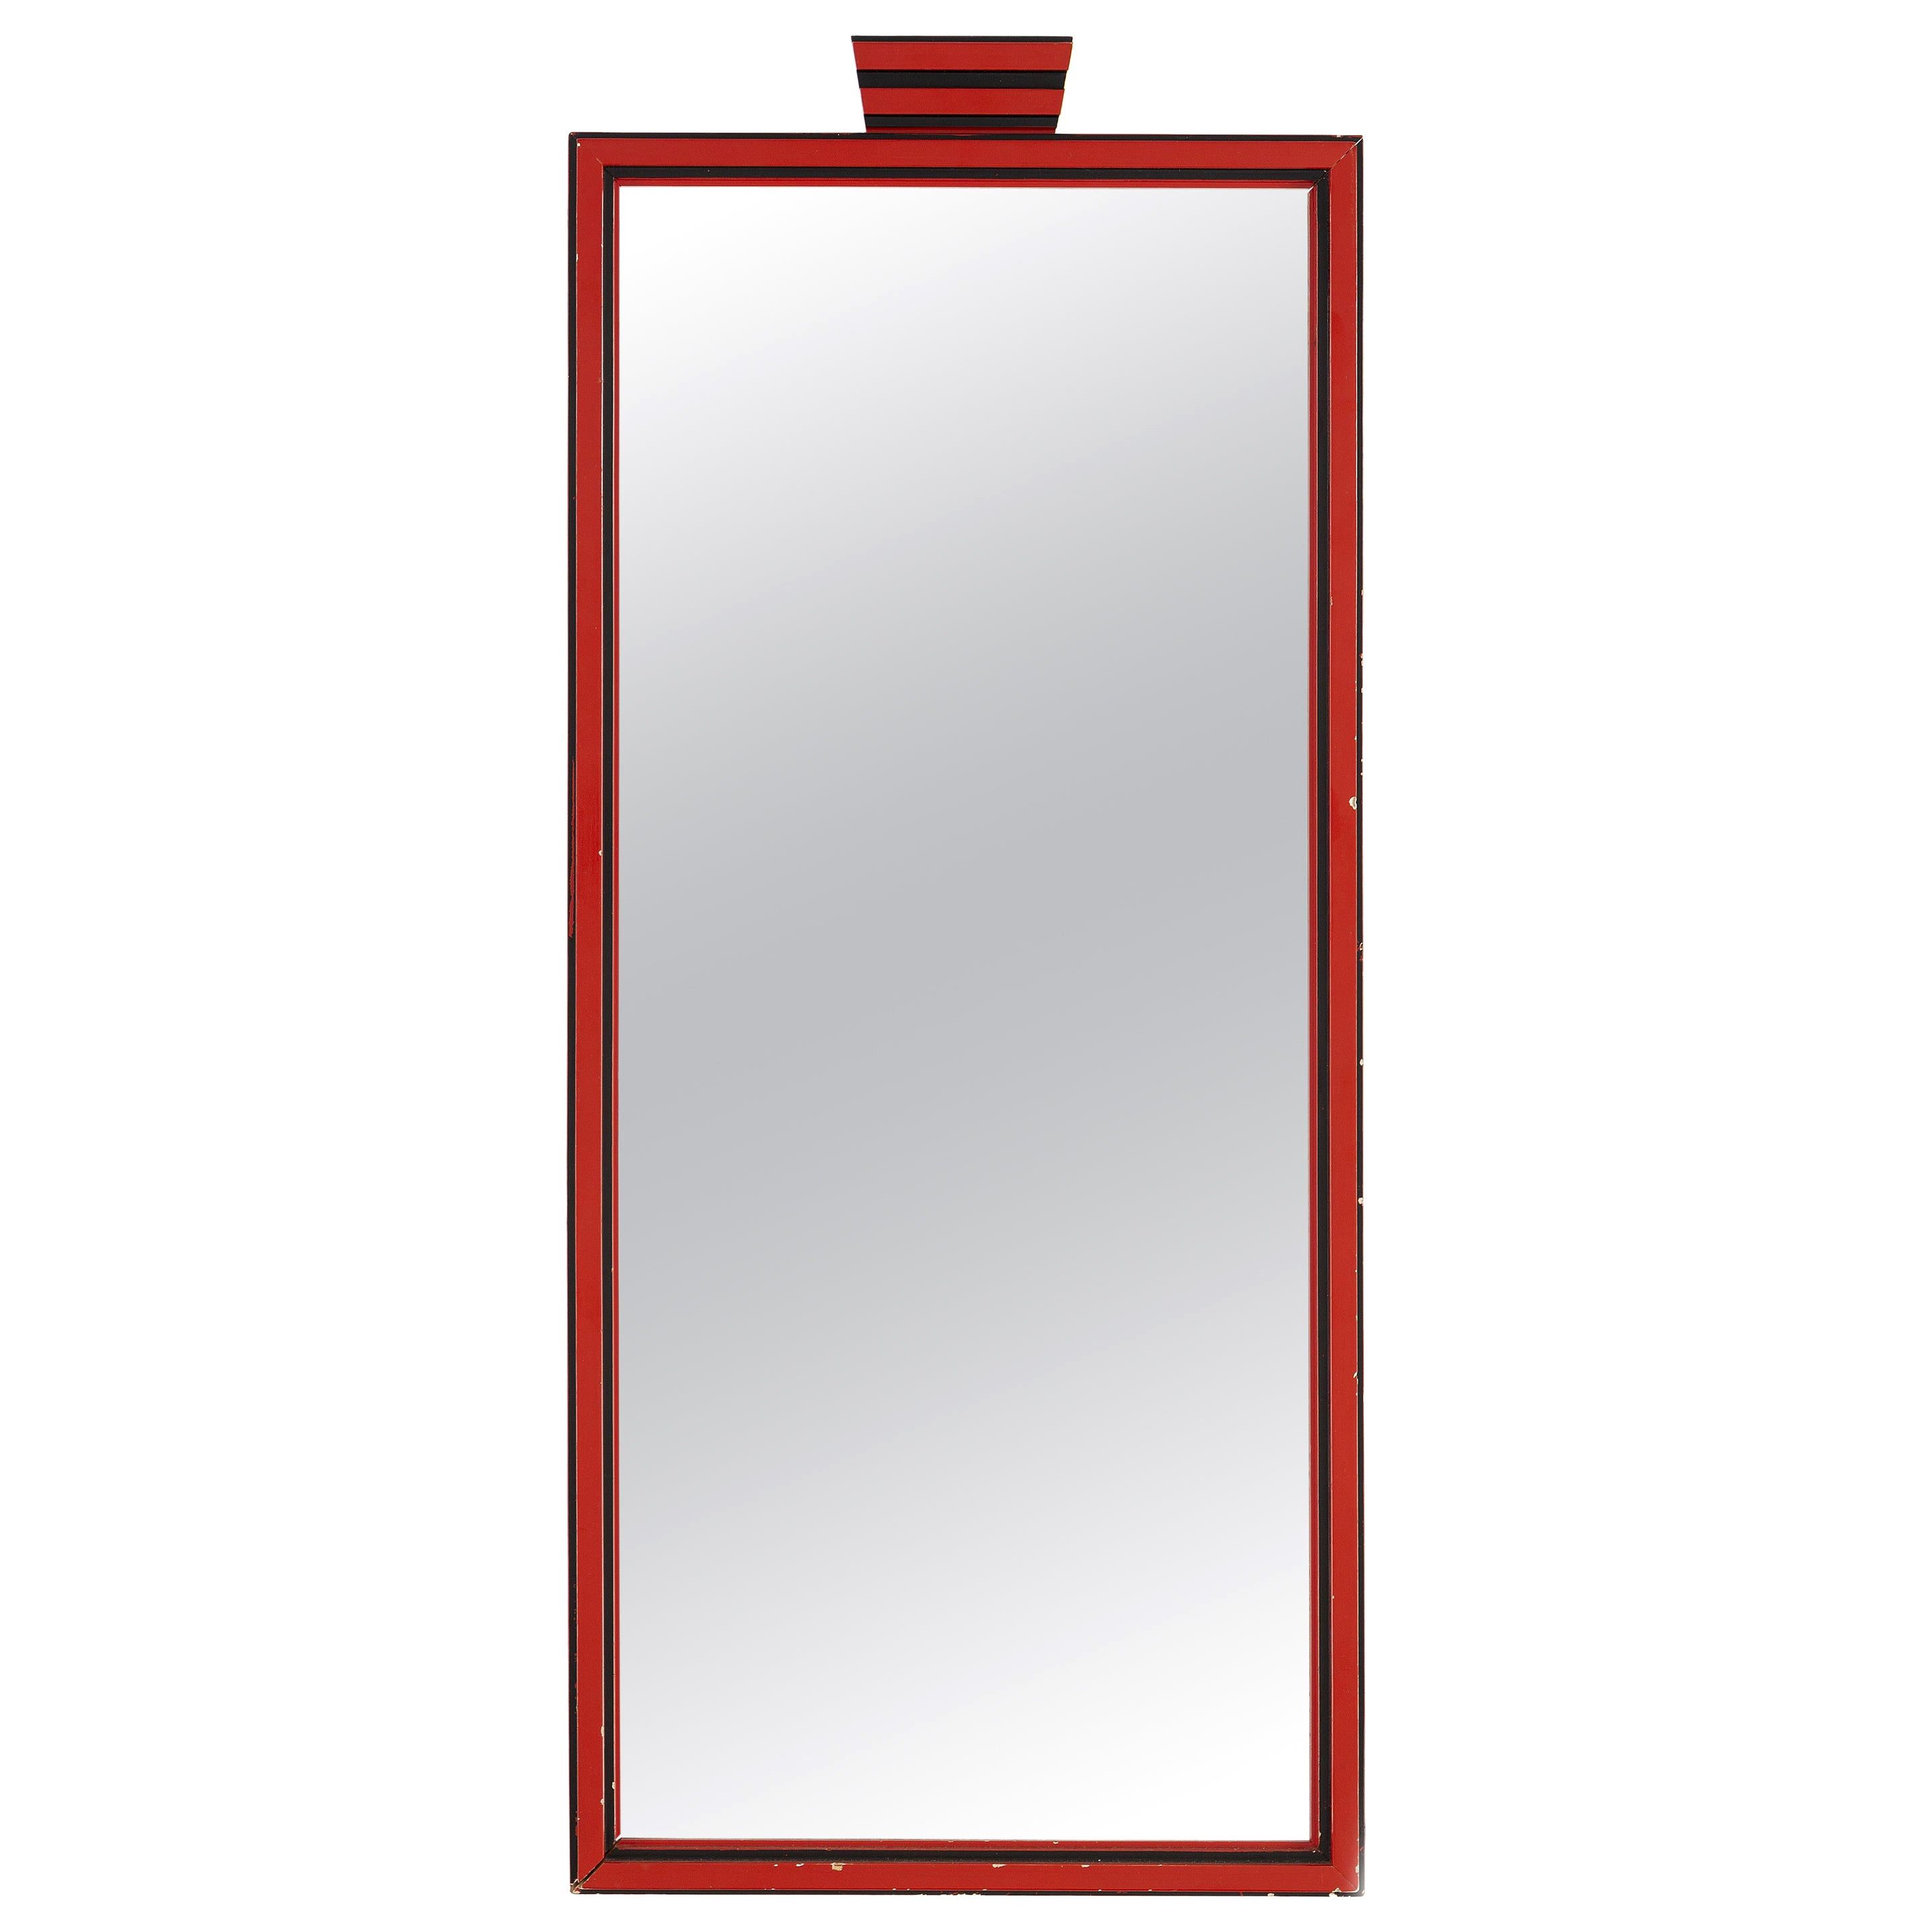 1920s Red and Black Art Deco Mirror